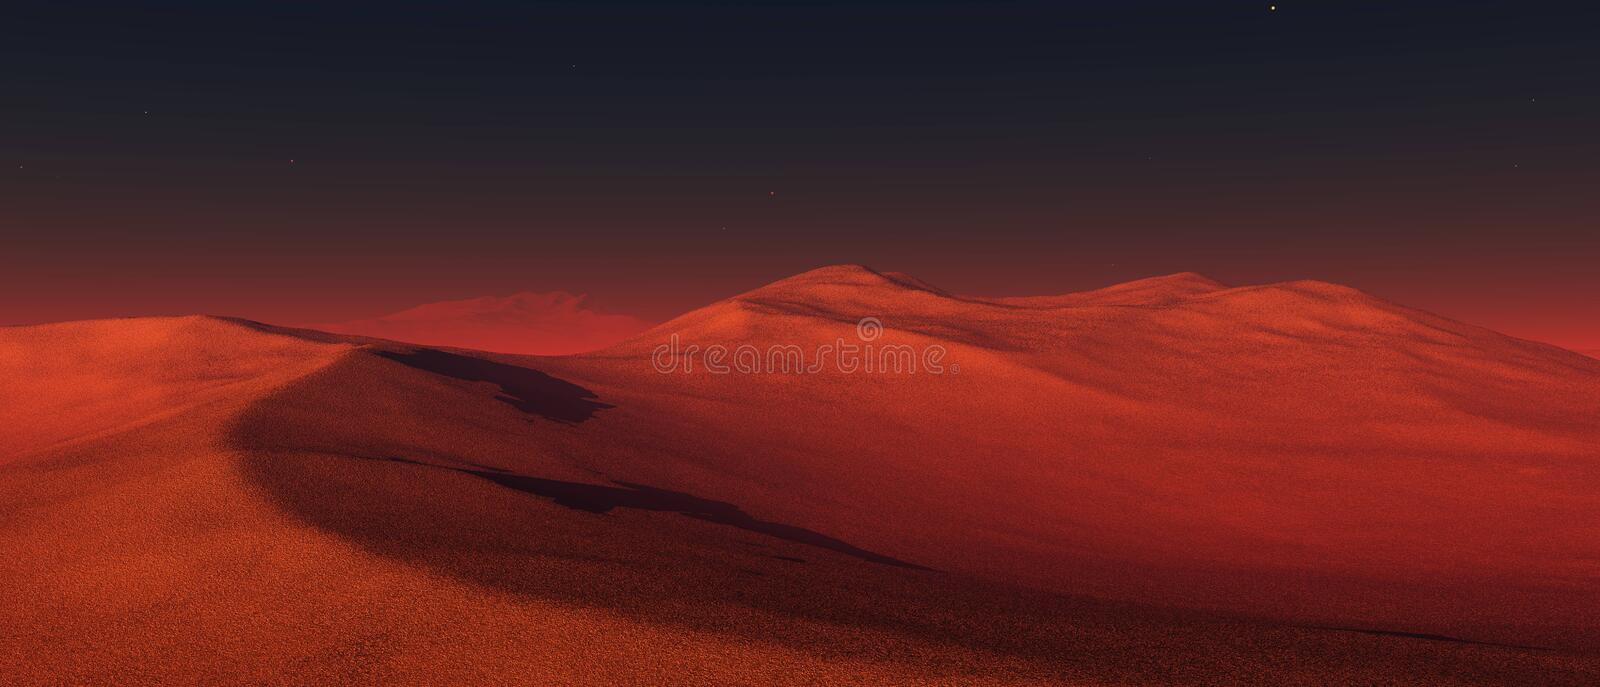 A panorama of the planet Mars stock illustration